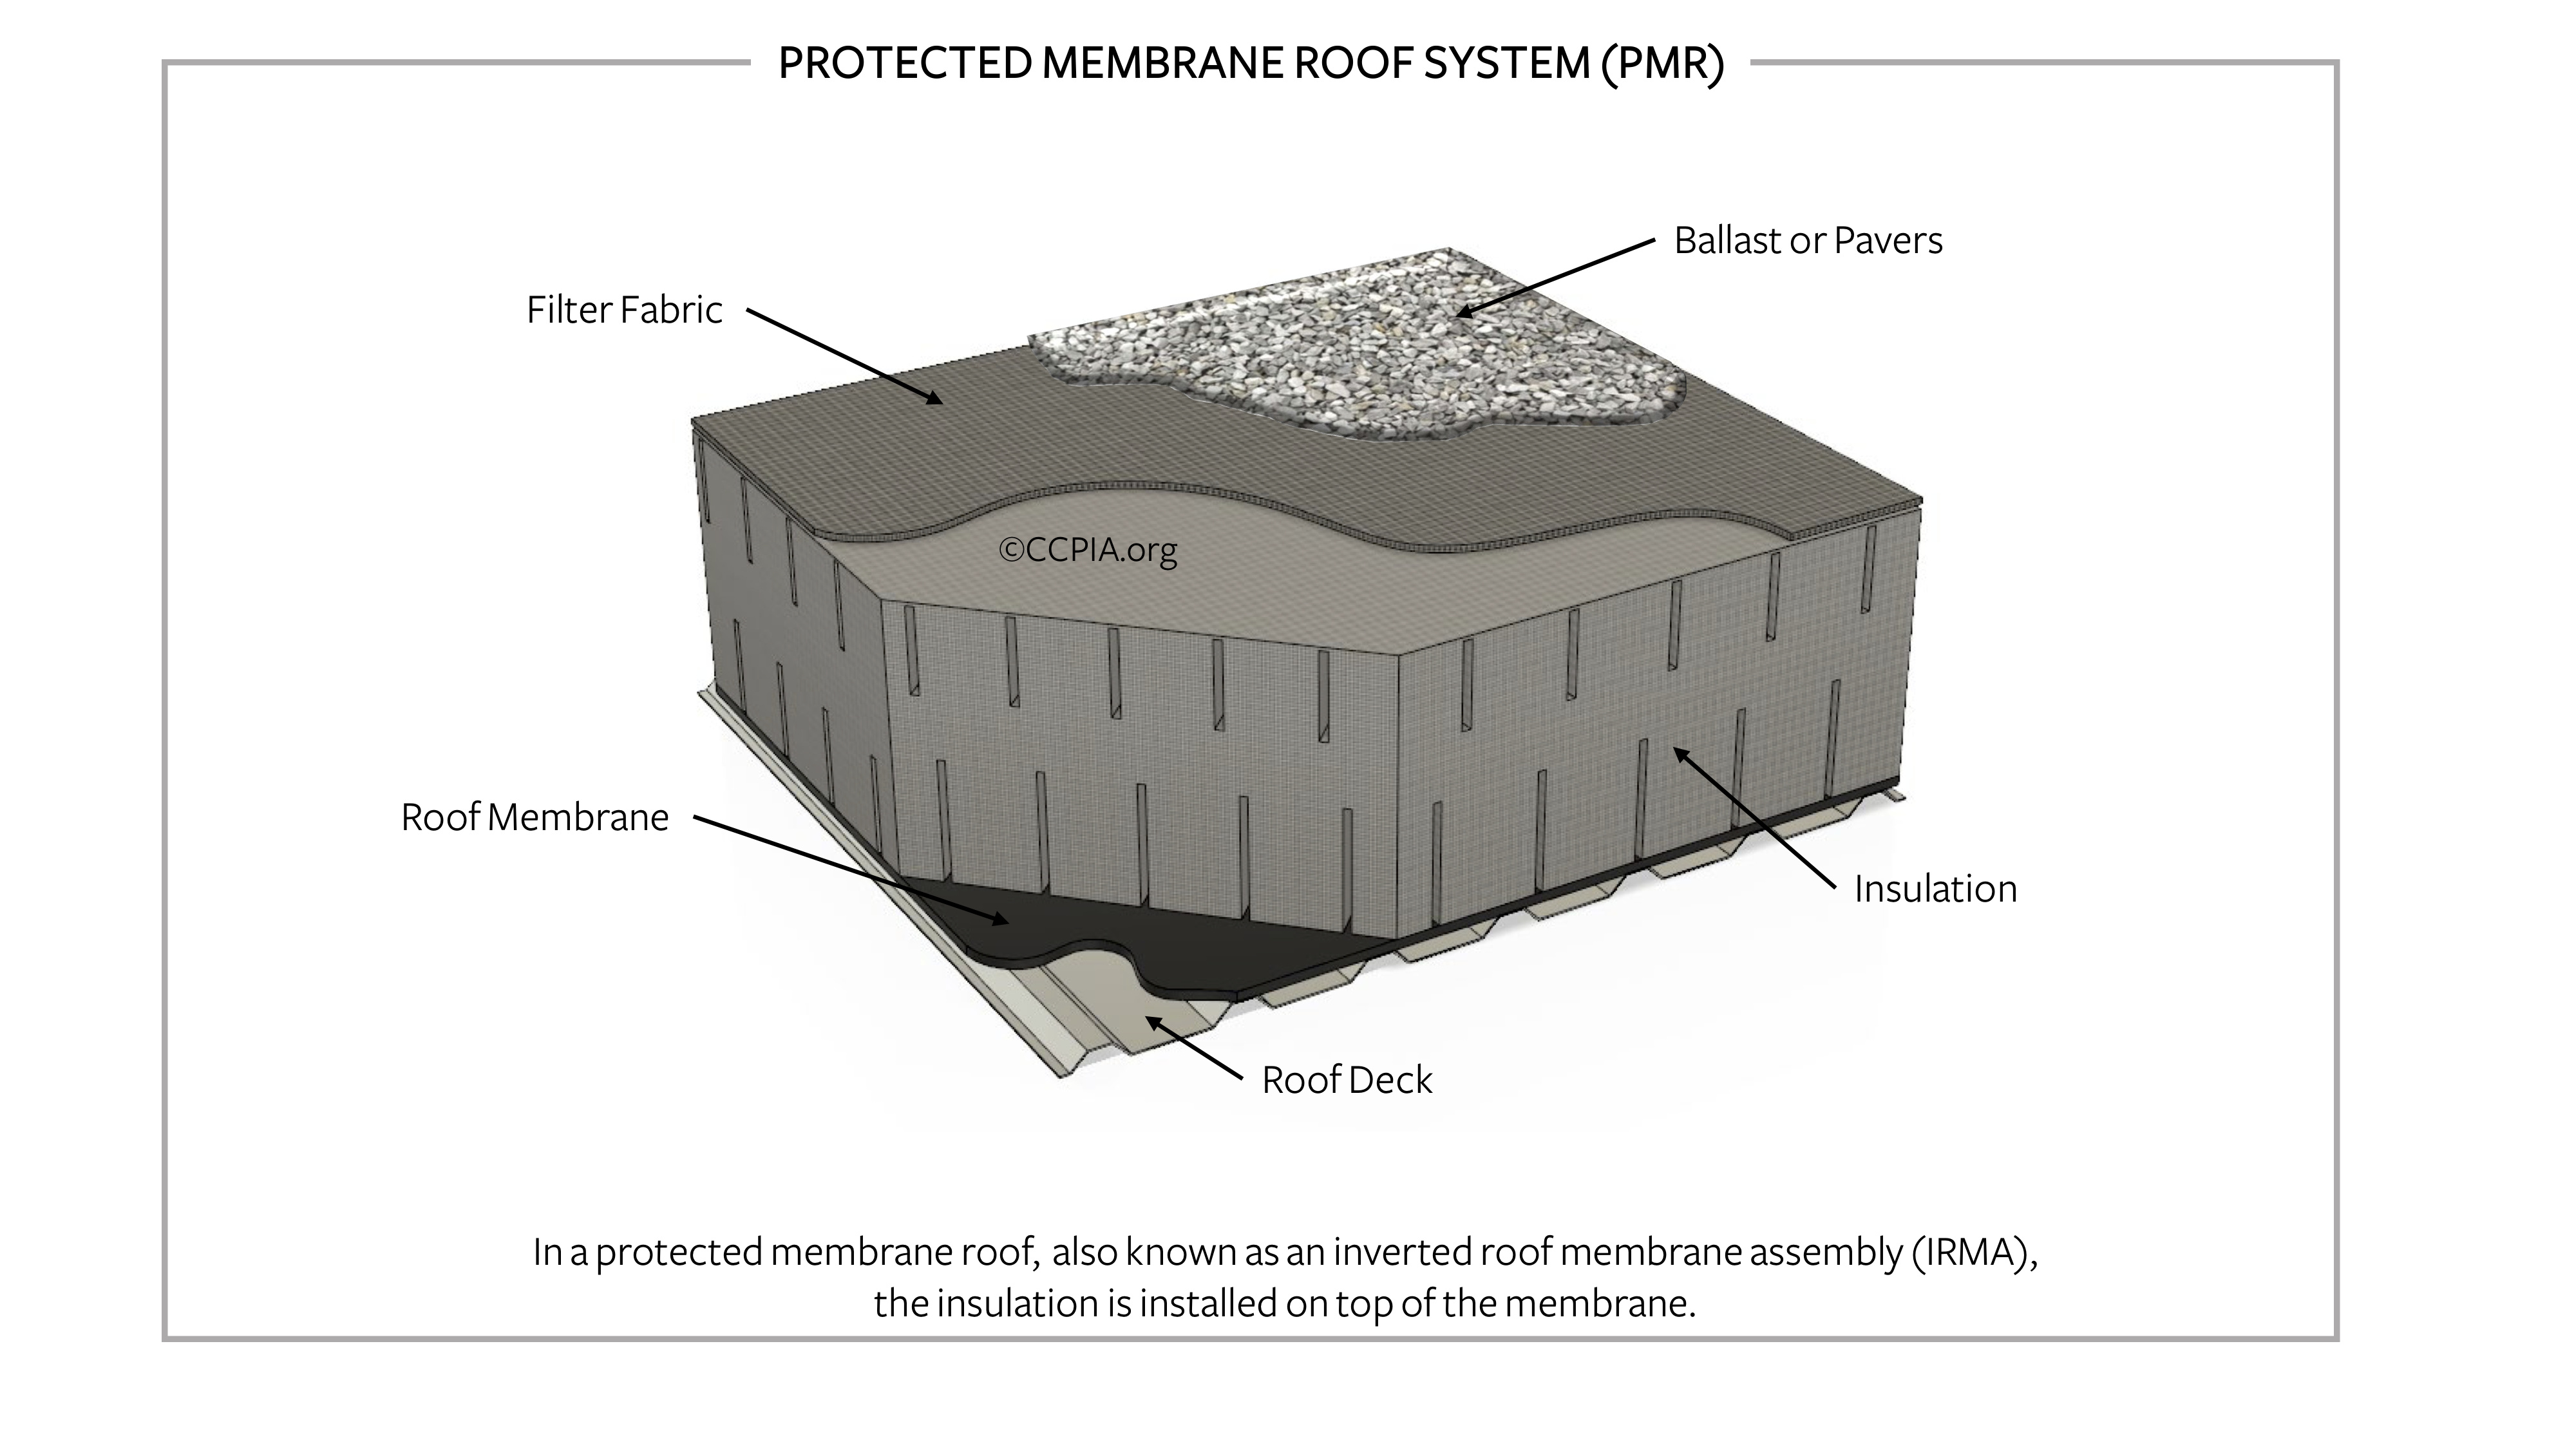 Protected membrane roof system (PMR).